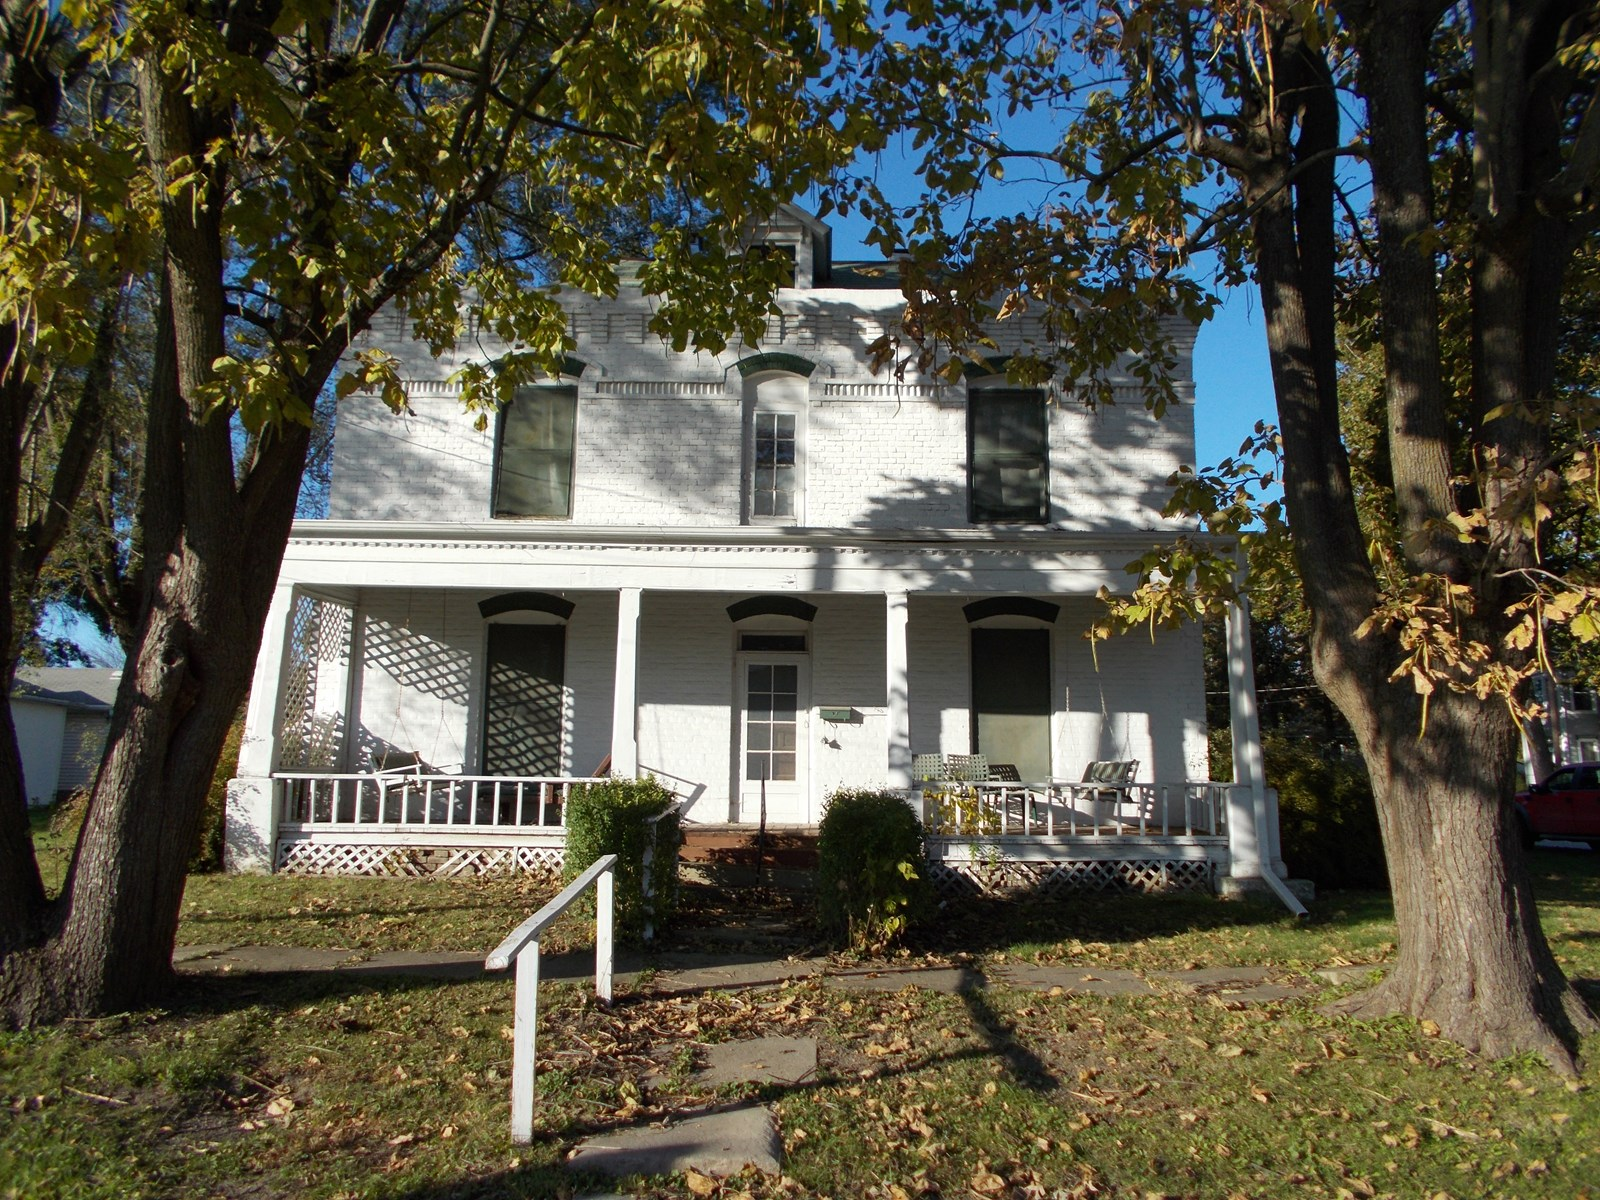 Bethany Missouri Real Estate - Country Homes, Farms, Ranches